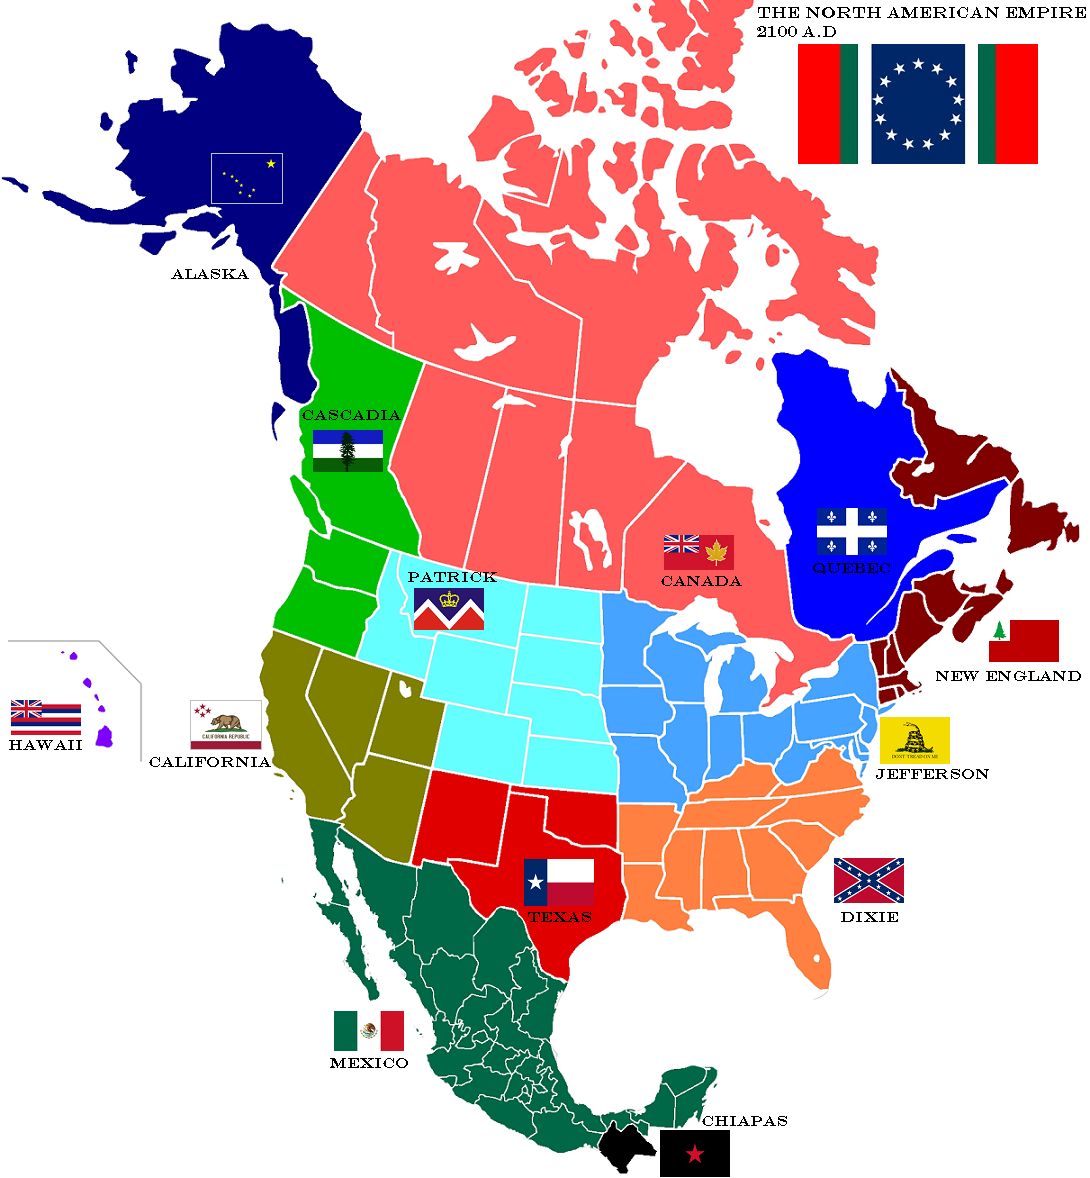 Map of North American Empire by lamnay on deviantART Harbingers